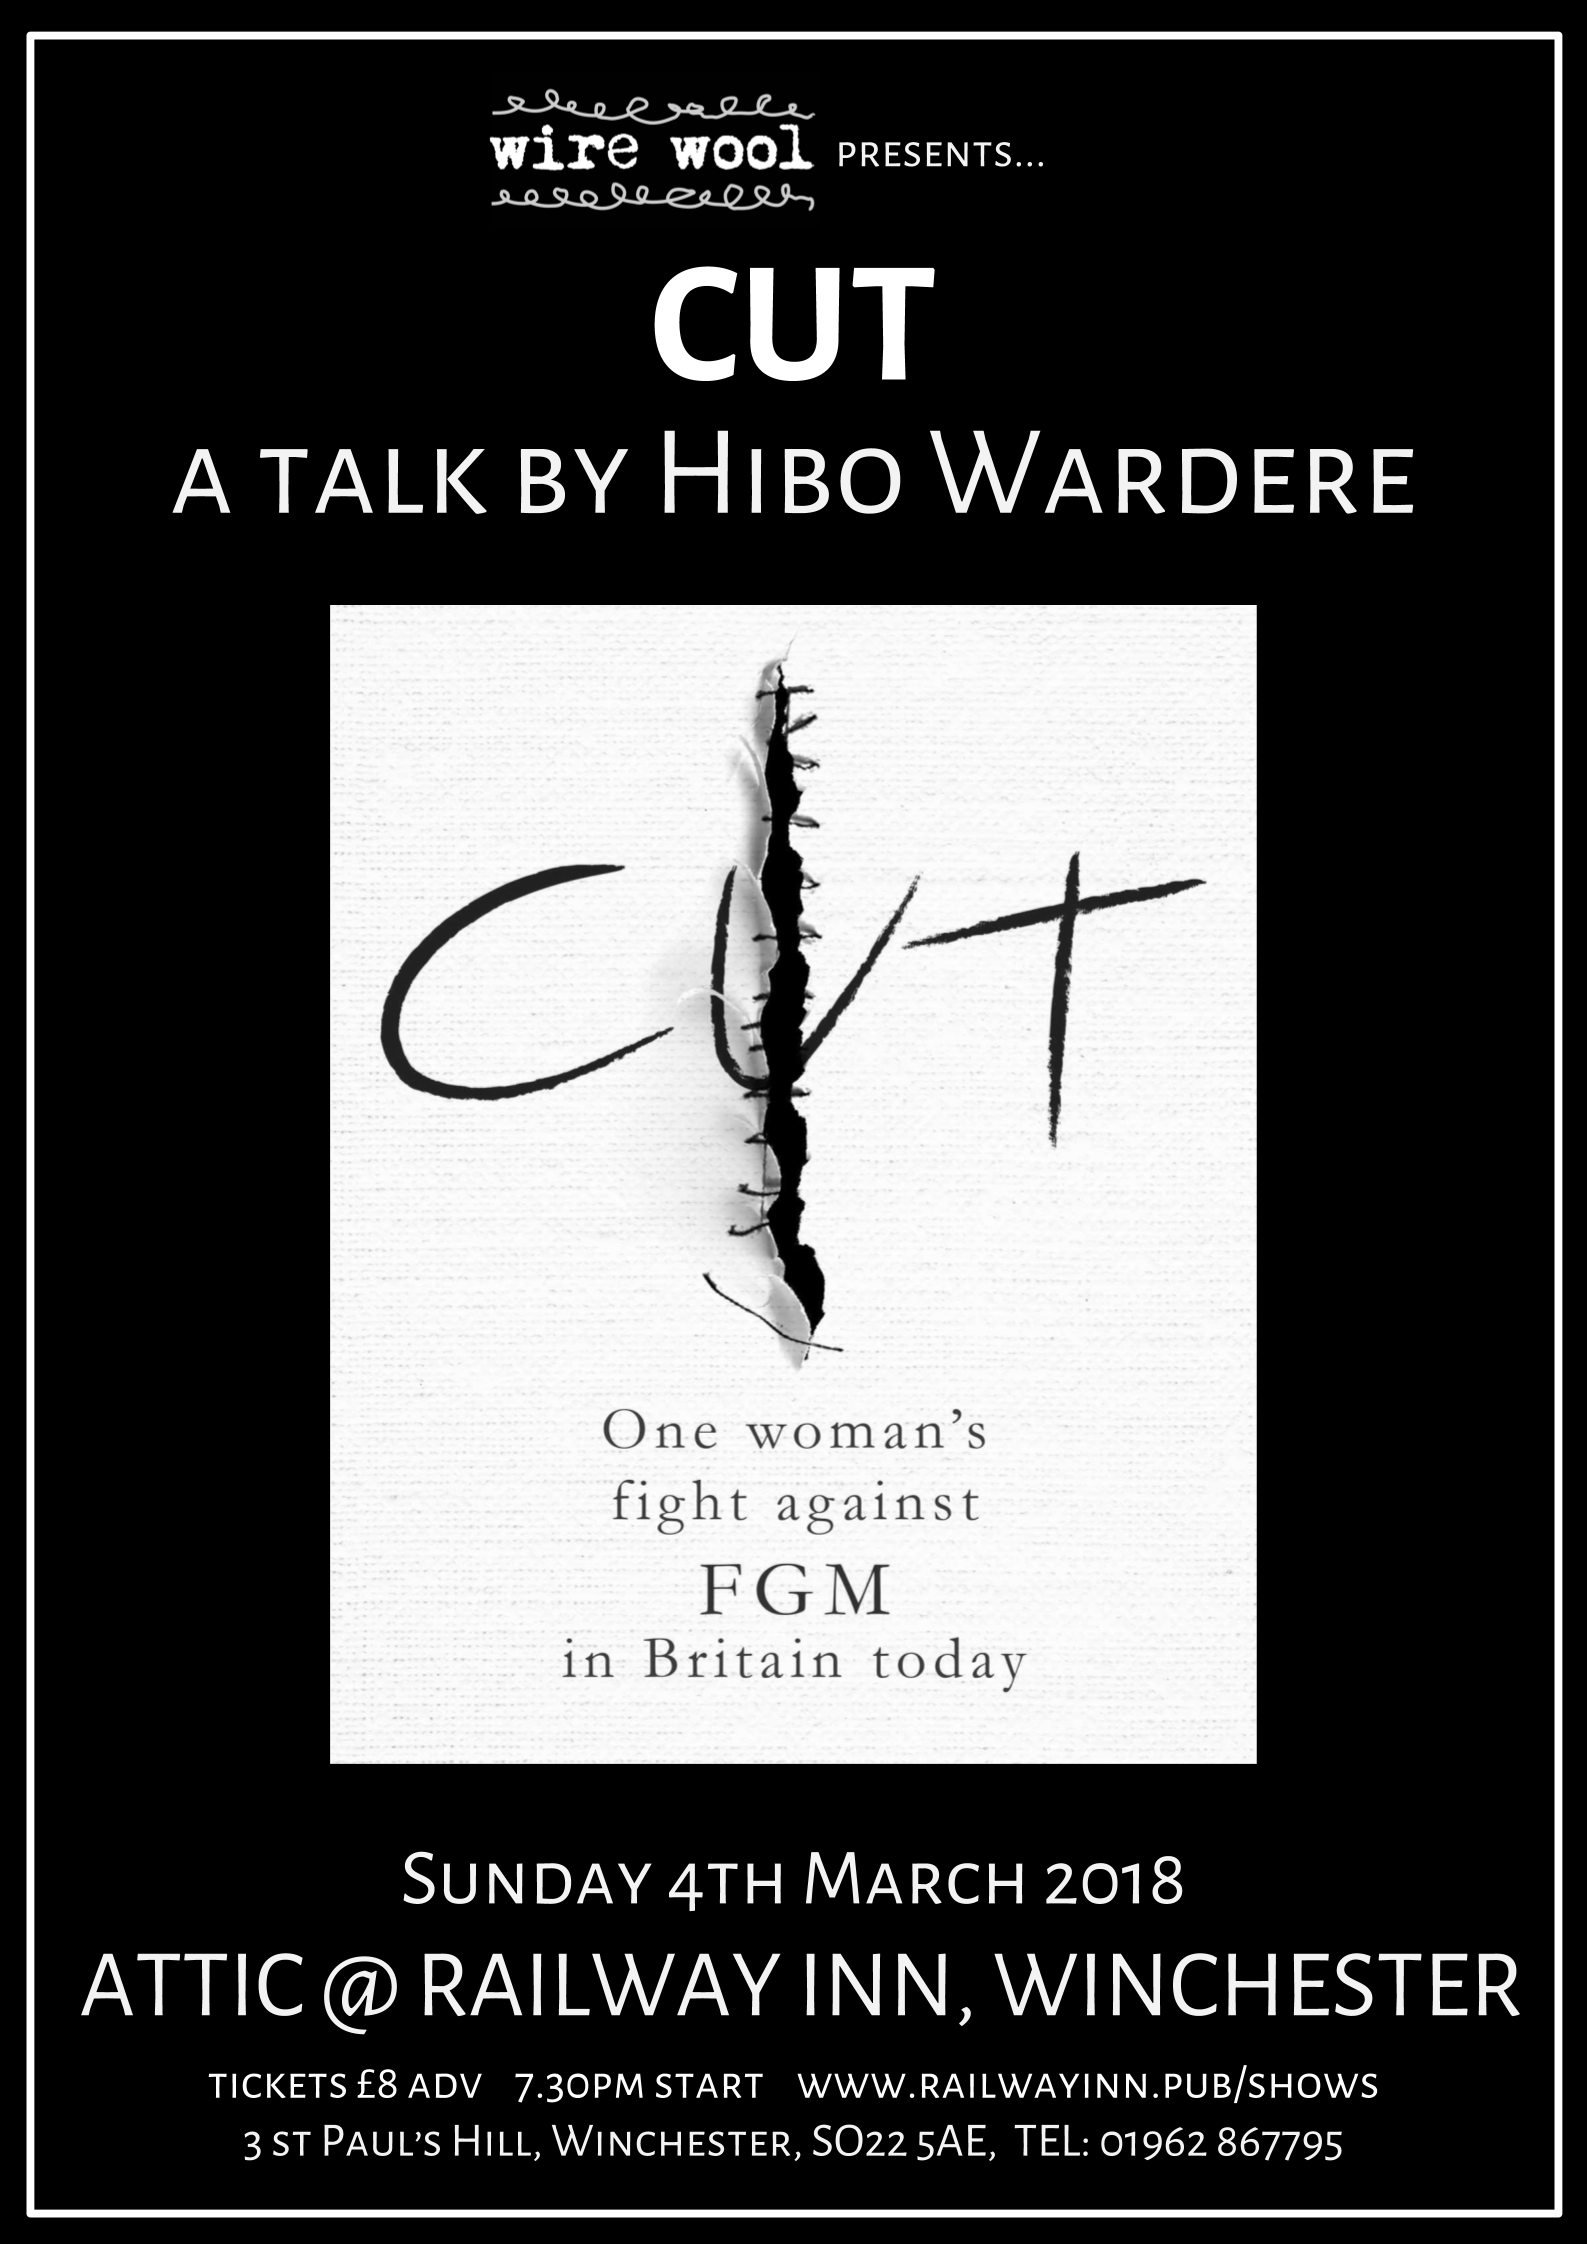 Cut: A talk by Hibo Wardere